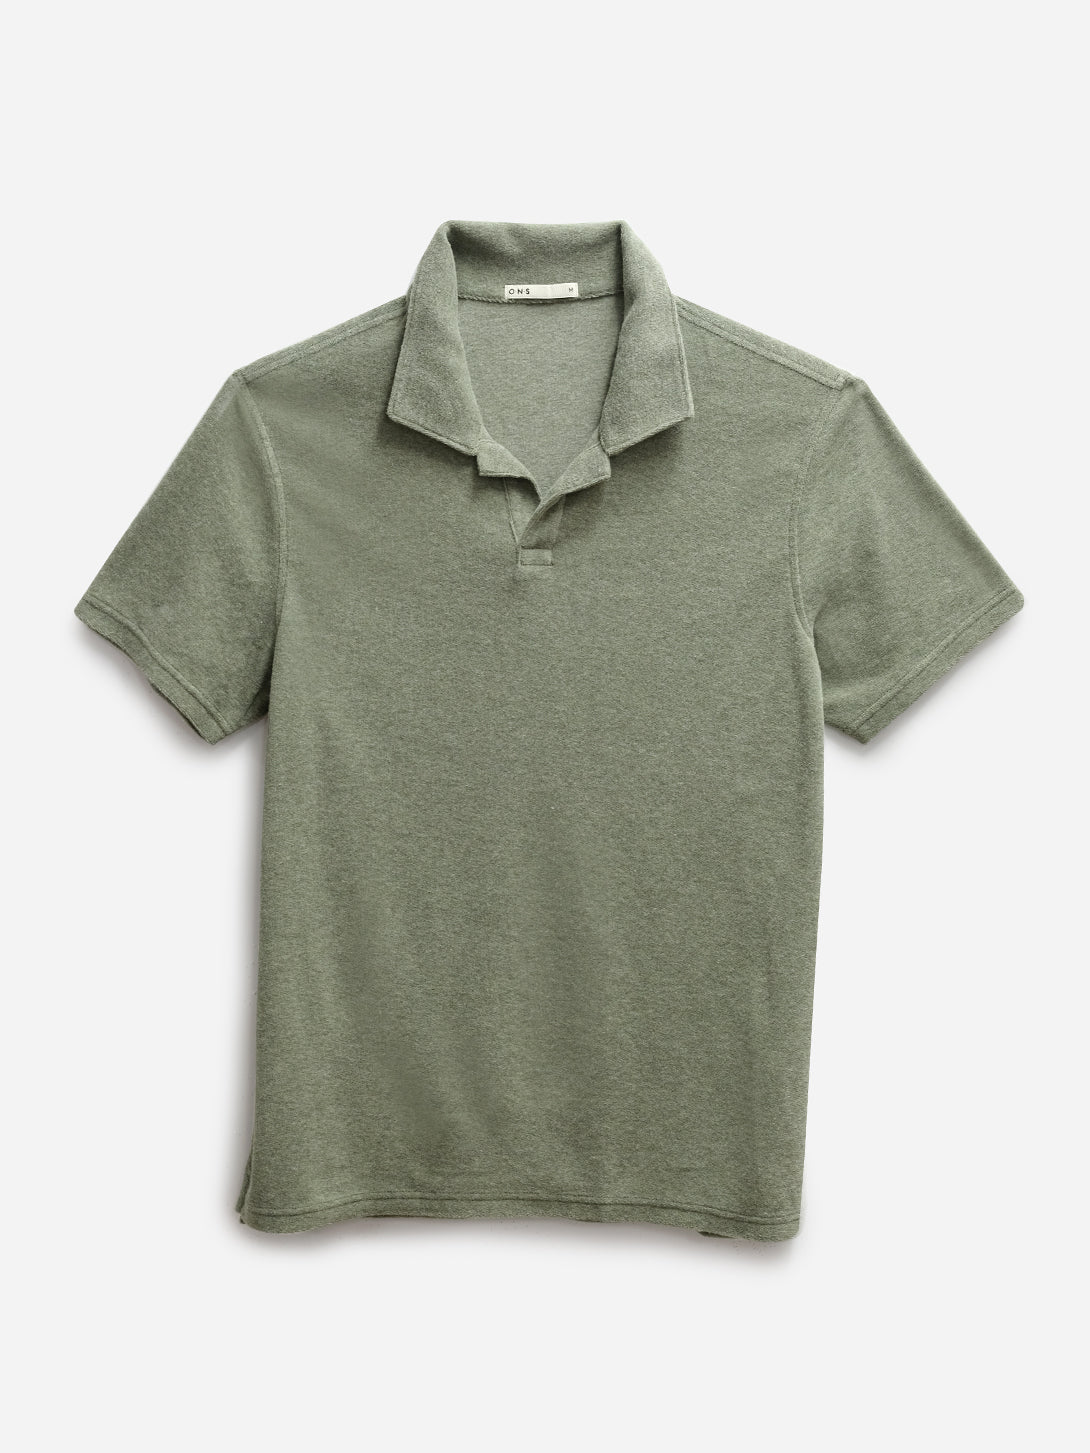 GREEN REVERSE TERRY POLO ONS MENS KNITS